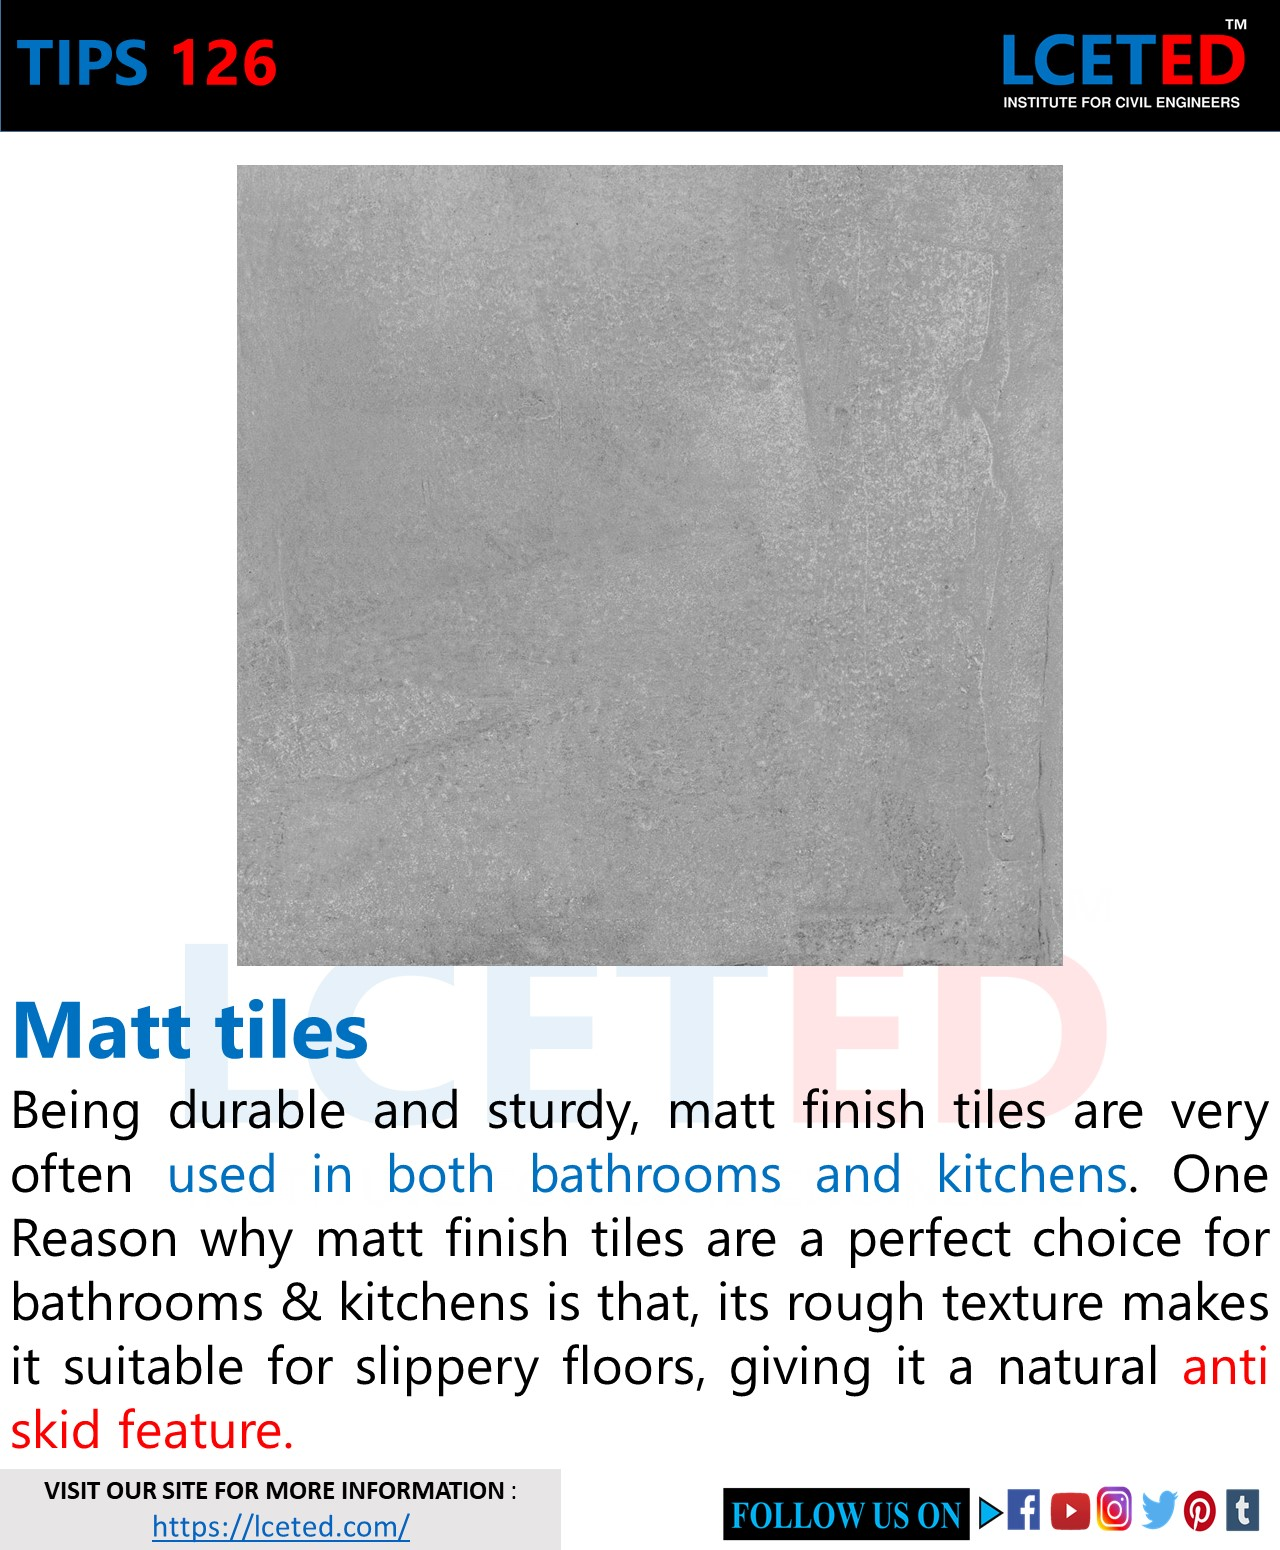 KNOW THE DIFFERENCE BETWEEN GLOSSY TILES OR SATIN MATTE TILES?